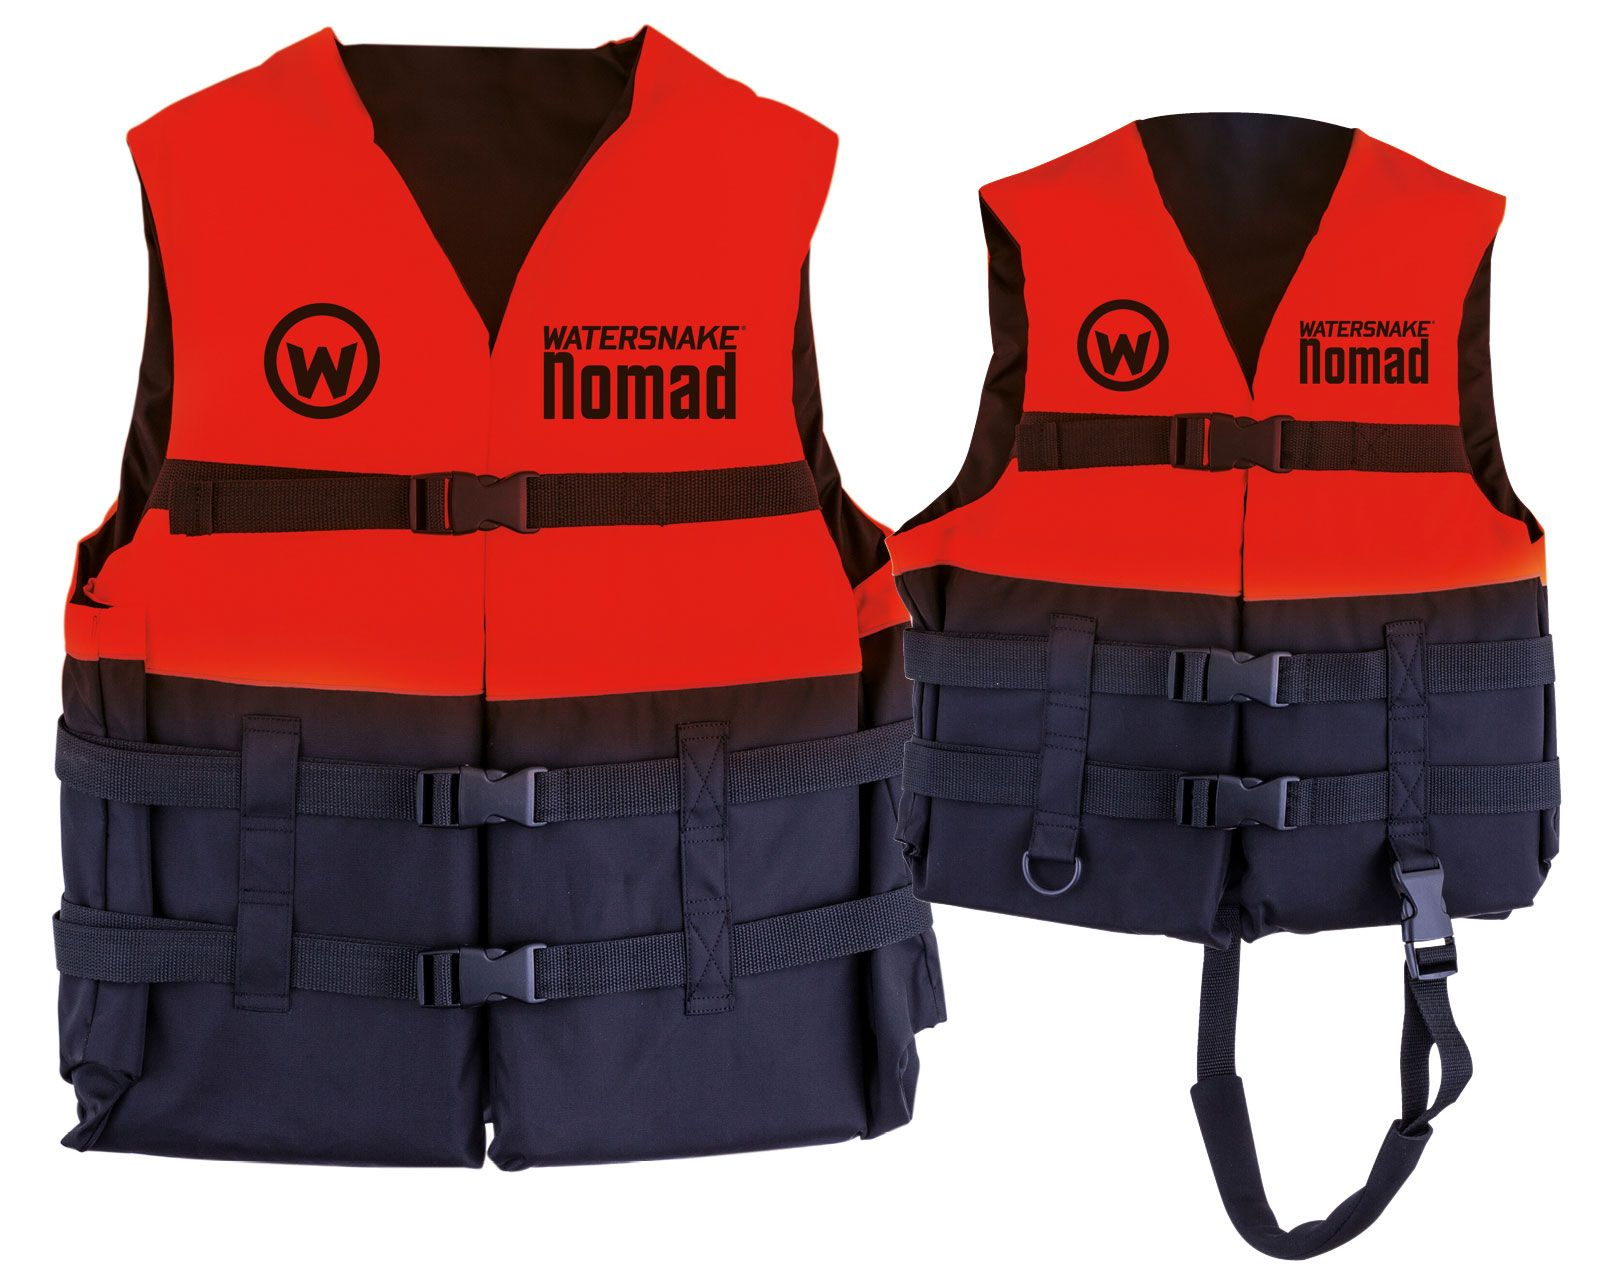 Watersnake Nomad PFD Level 50 Red Life Jacket Child